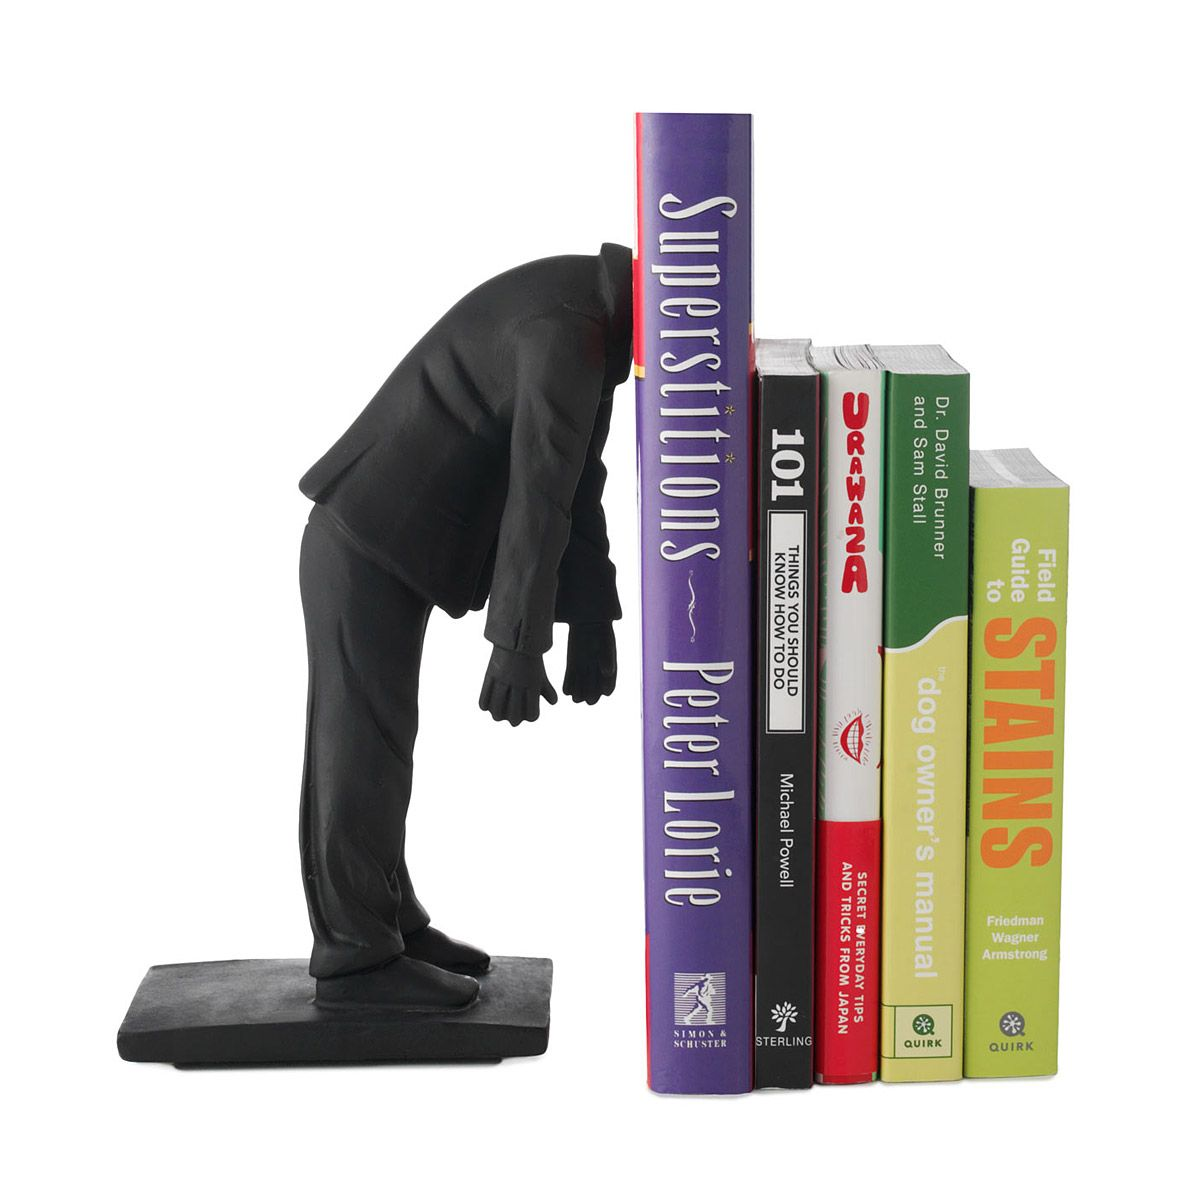 Bookworm Bookend  Bookworms Books Ends Library Shelf Bookends shelves and